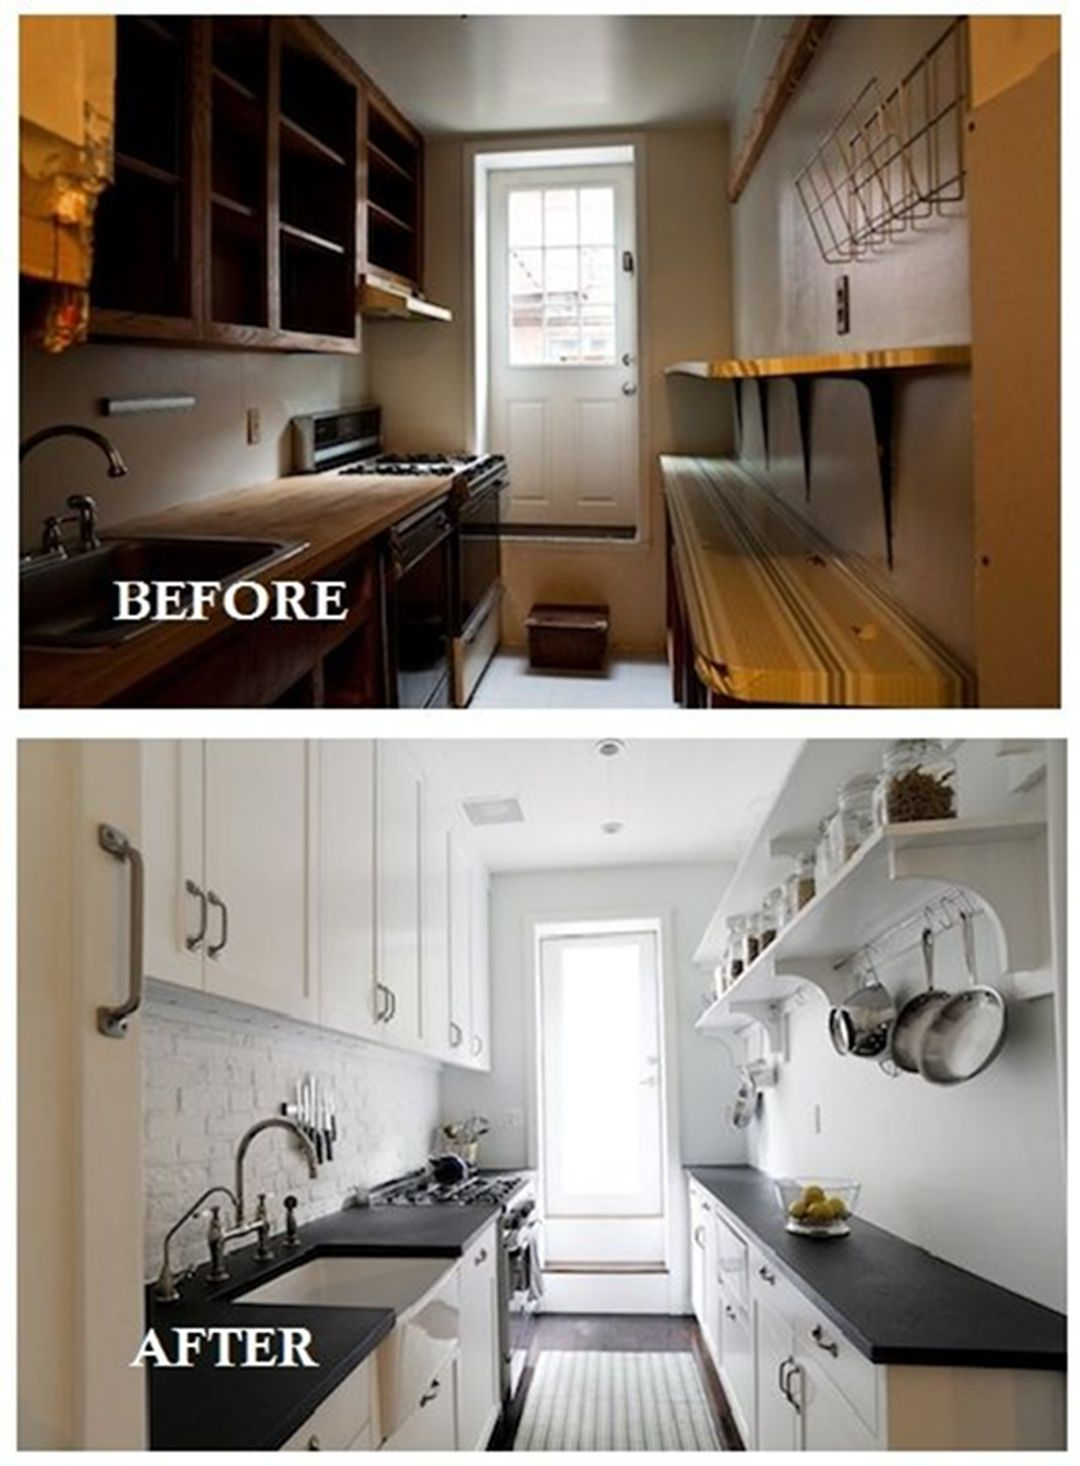 Kitchen Remodel Ideas Before And After 3103 Kitchen Remodel Small Galley Kitchen Renovation Budget Kitchen Remodel